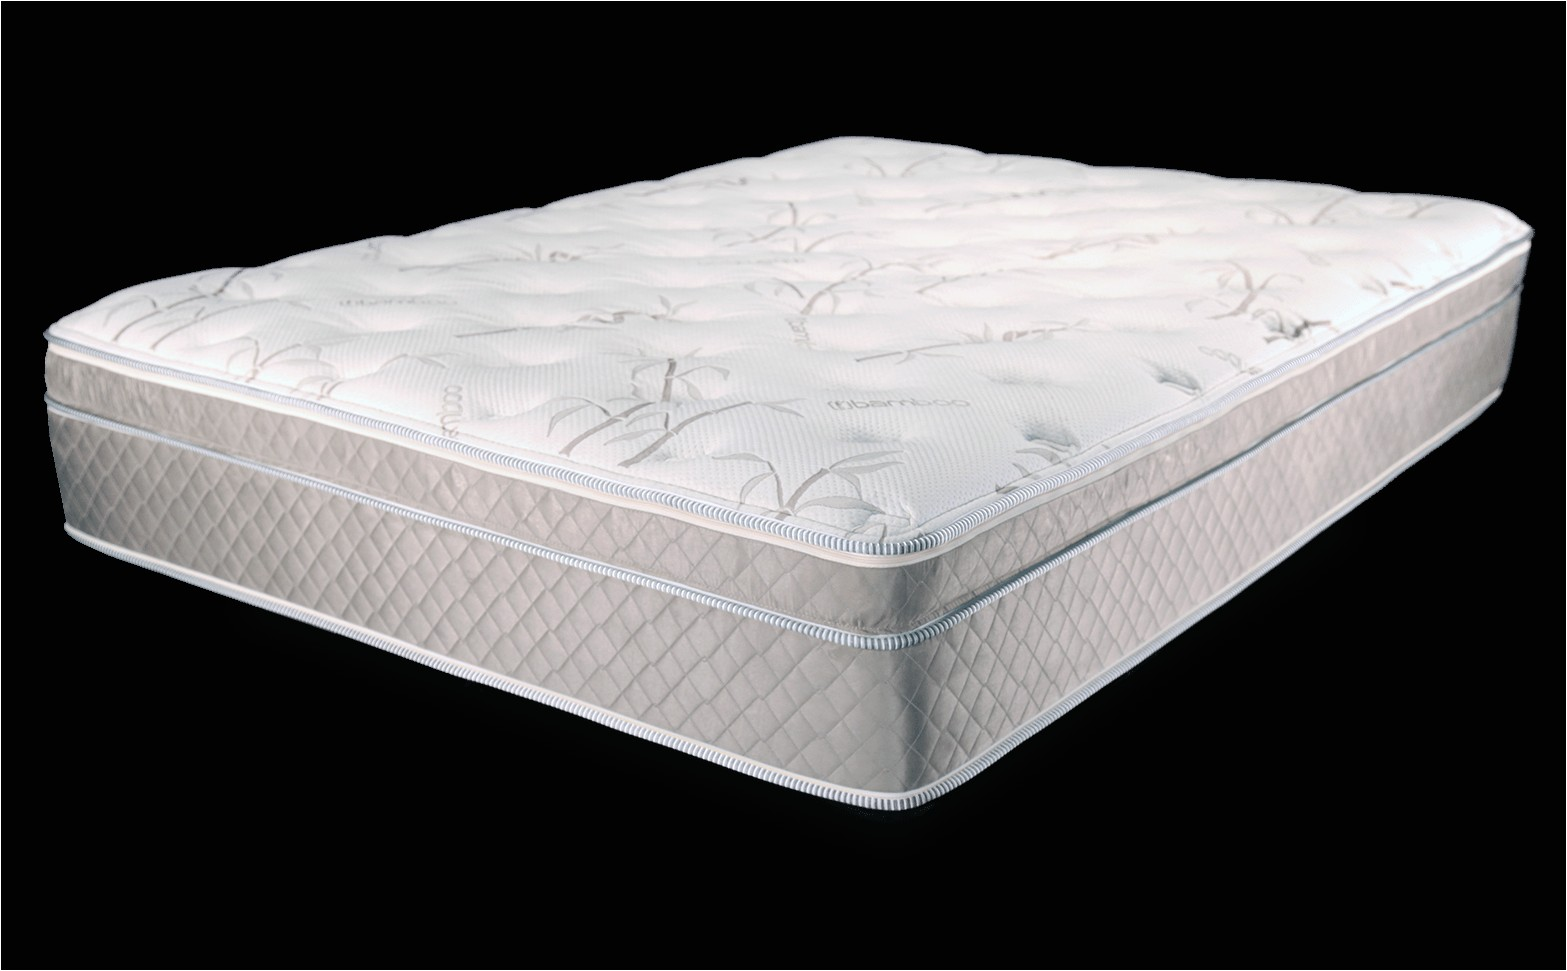 Ultimate Dreams Eurotop Latex Mattress Ultimate Dreams Eurotop Latex Mattress Dreamfoam Bedding